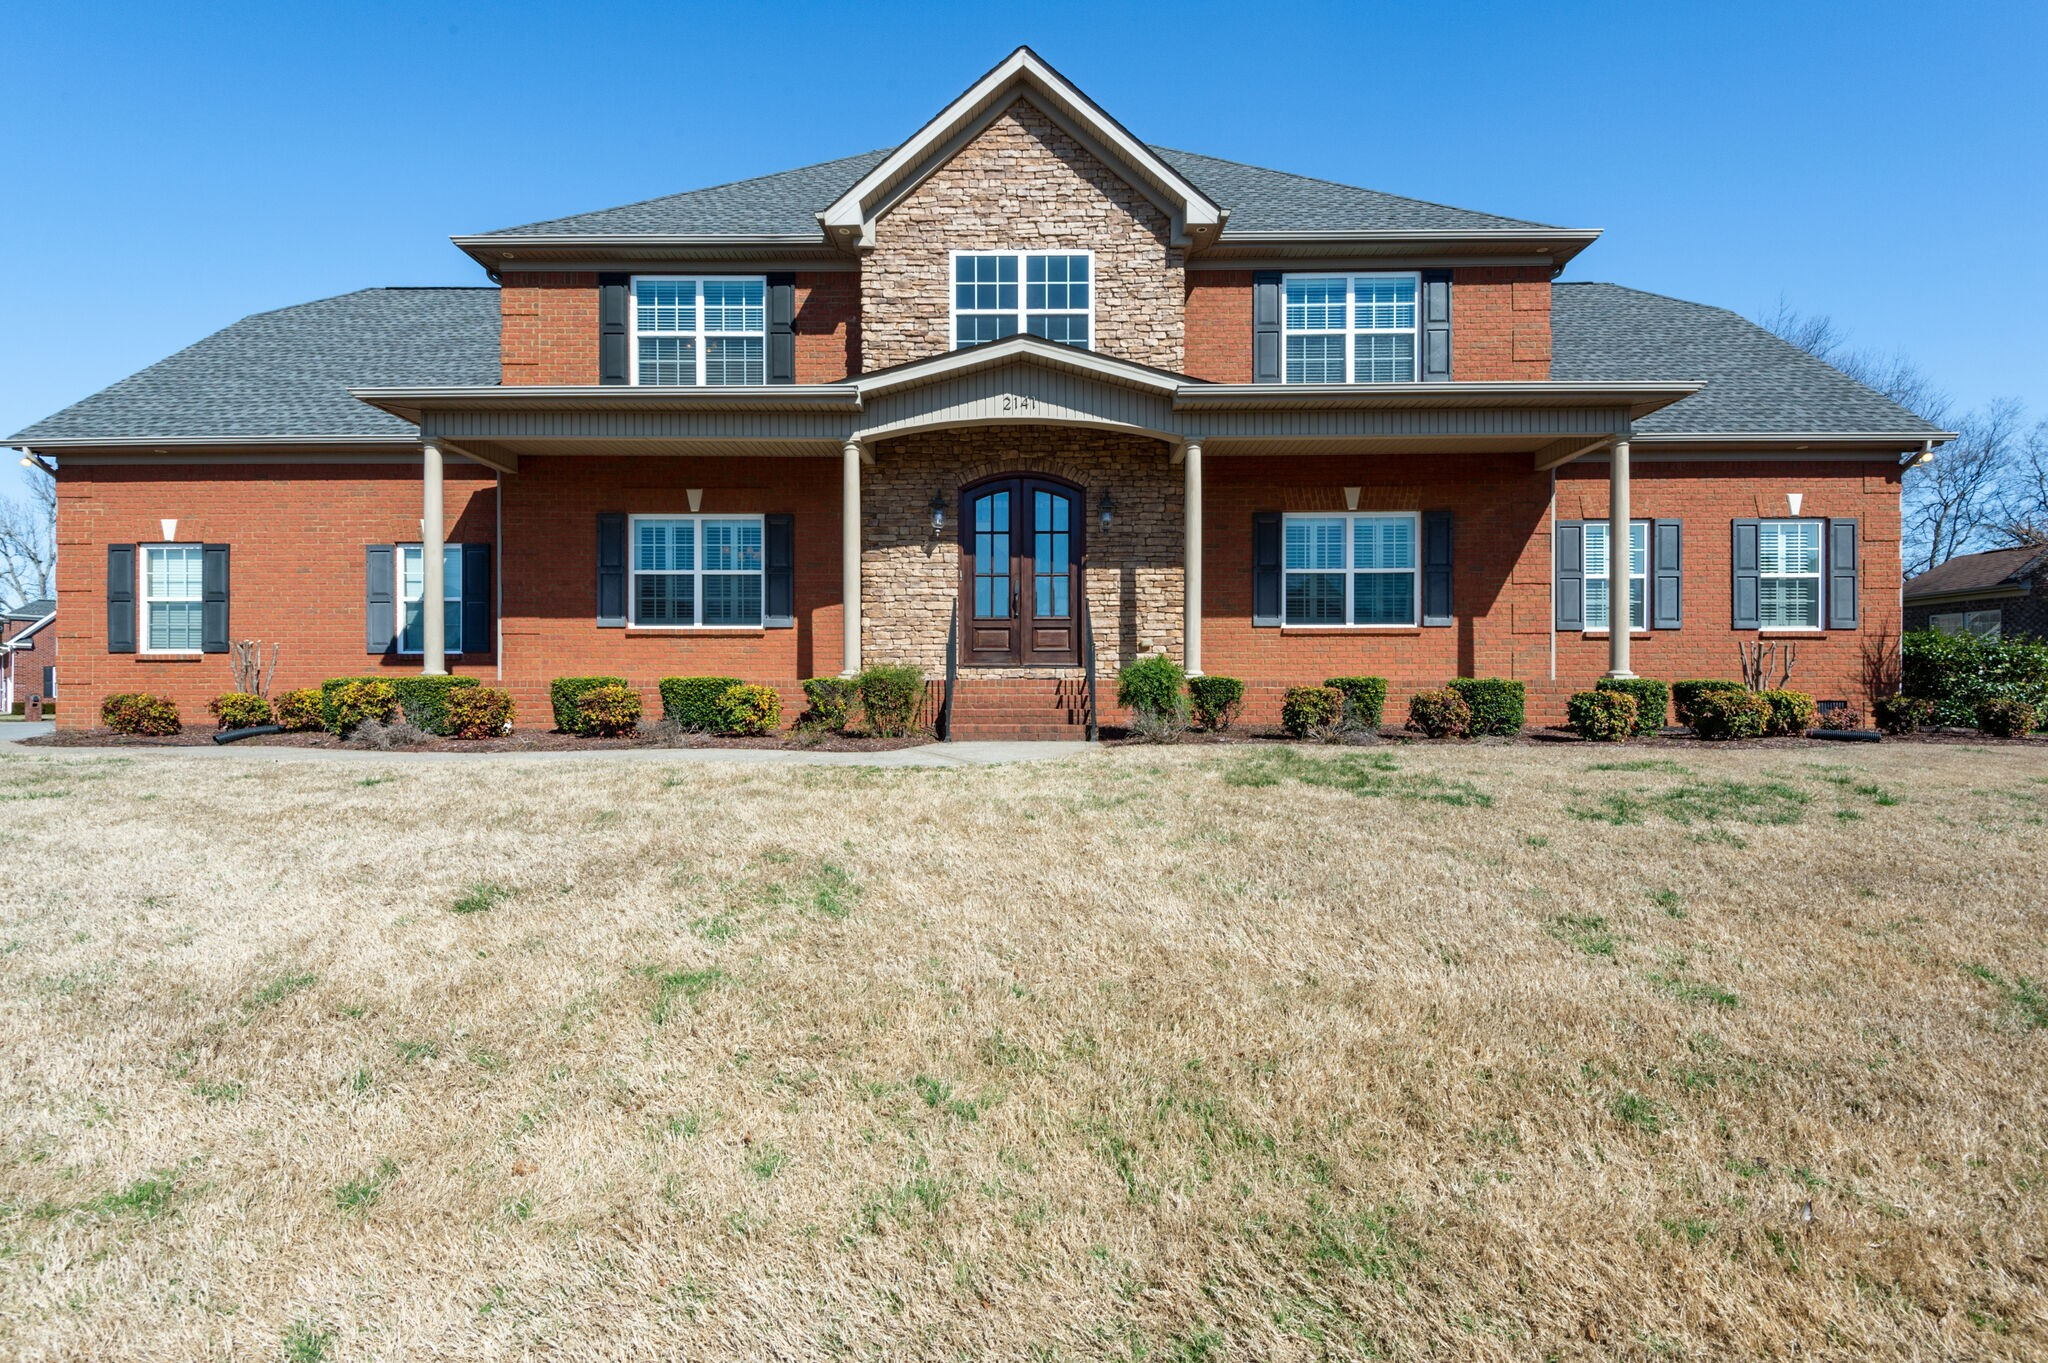 2141 Higgins Ln Property Photo - Murfreesboro, TN real estate listing